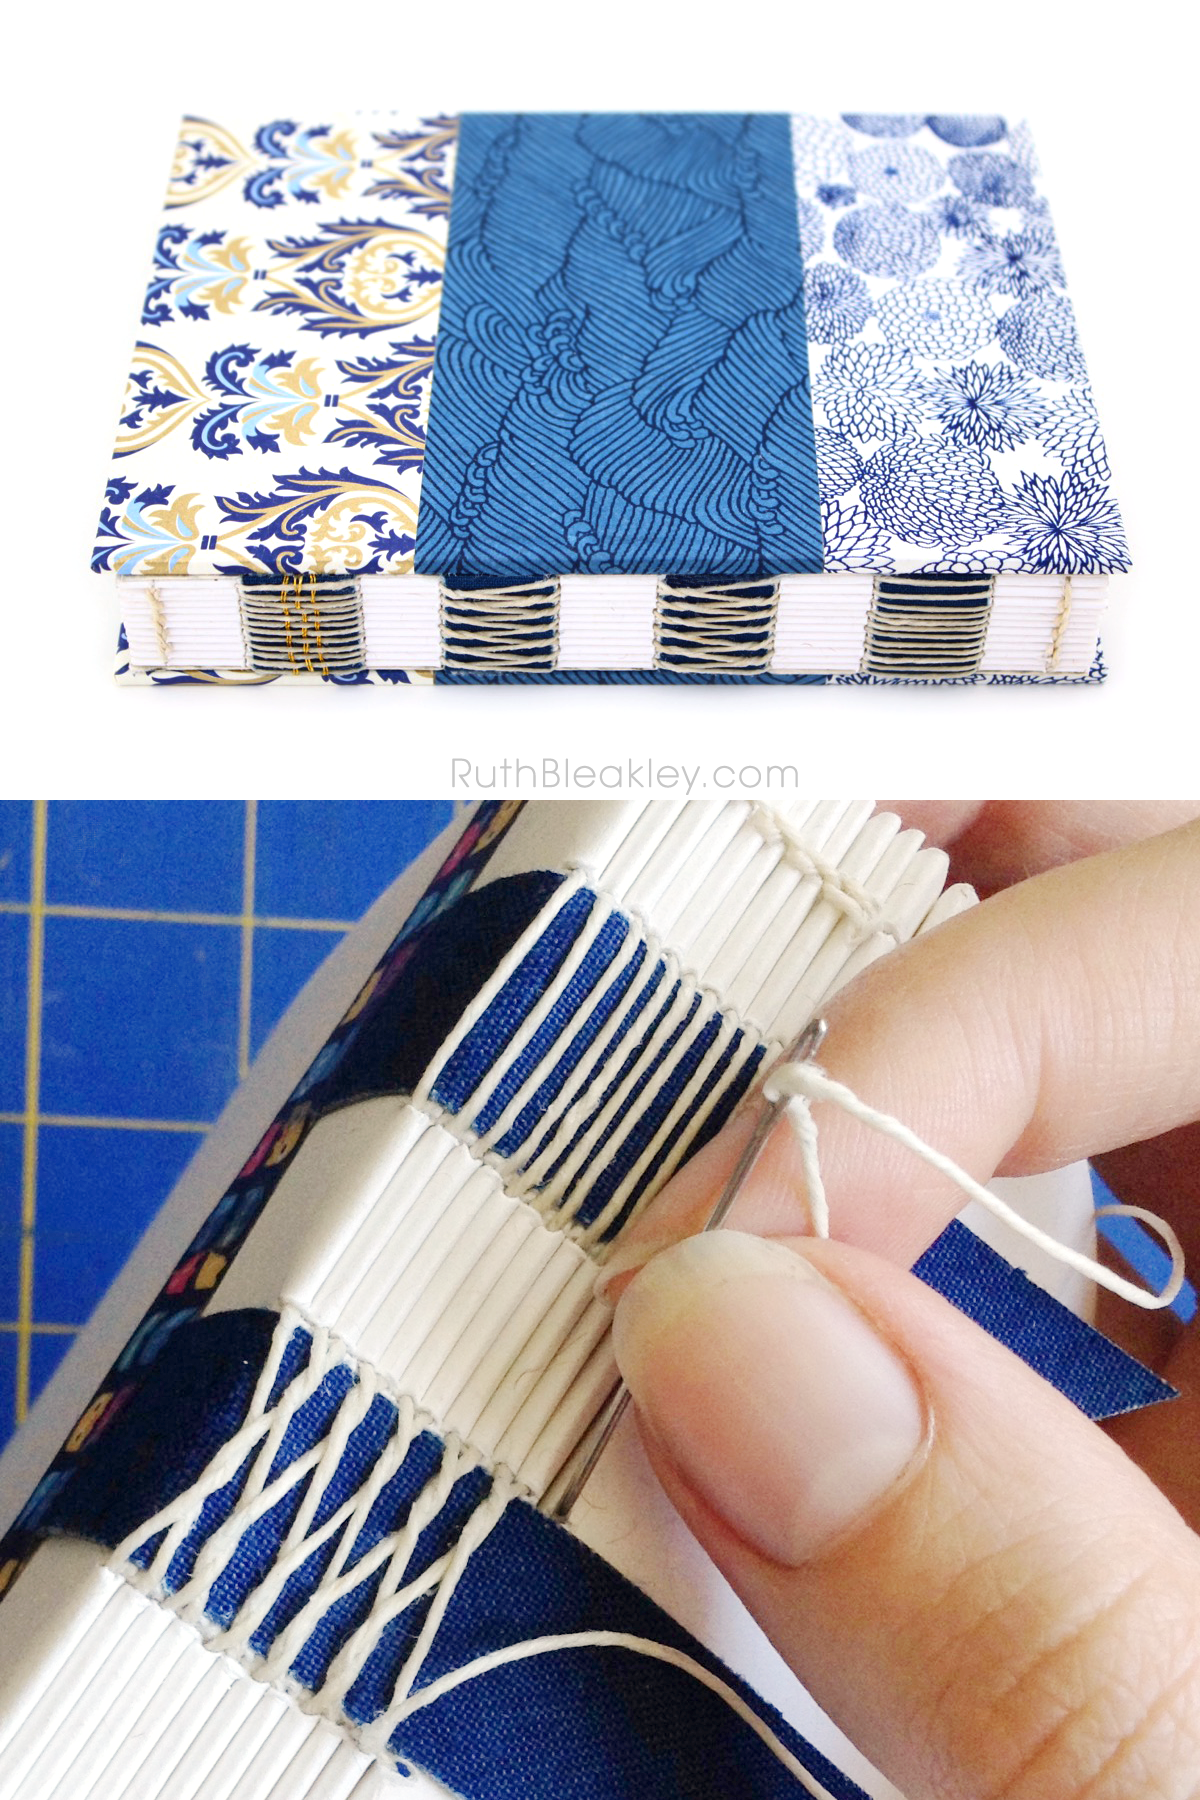 Handmade Journal with Blue Waves and Gold Florentine Paper from Ruth Bleakley - French Link Stitch